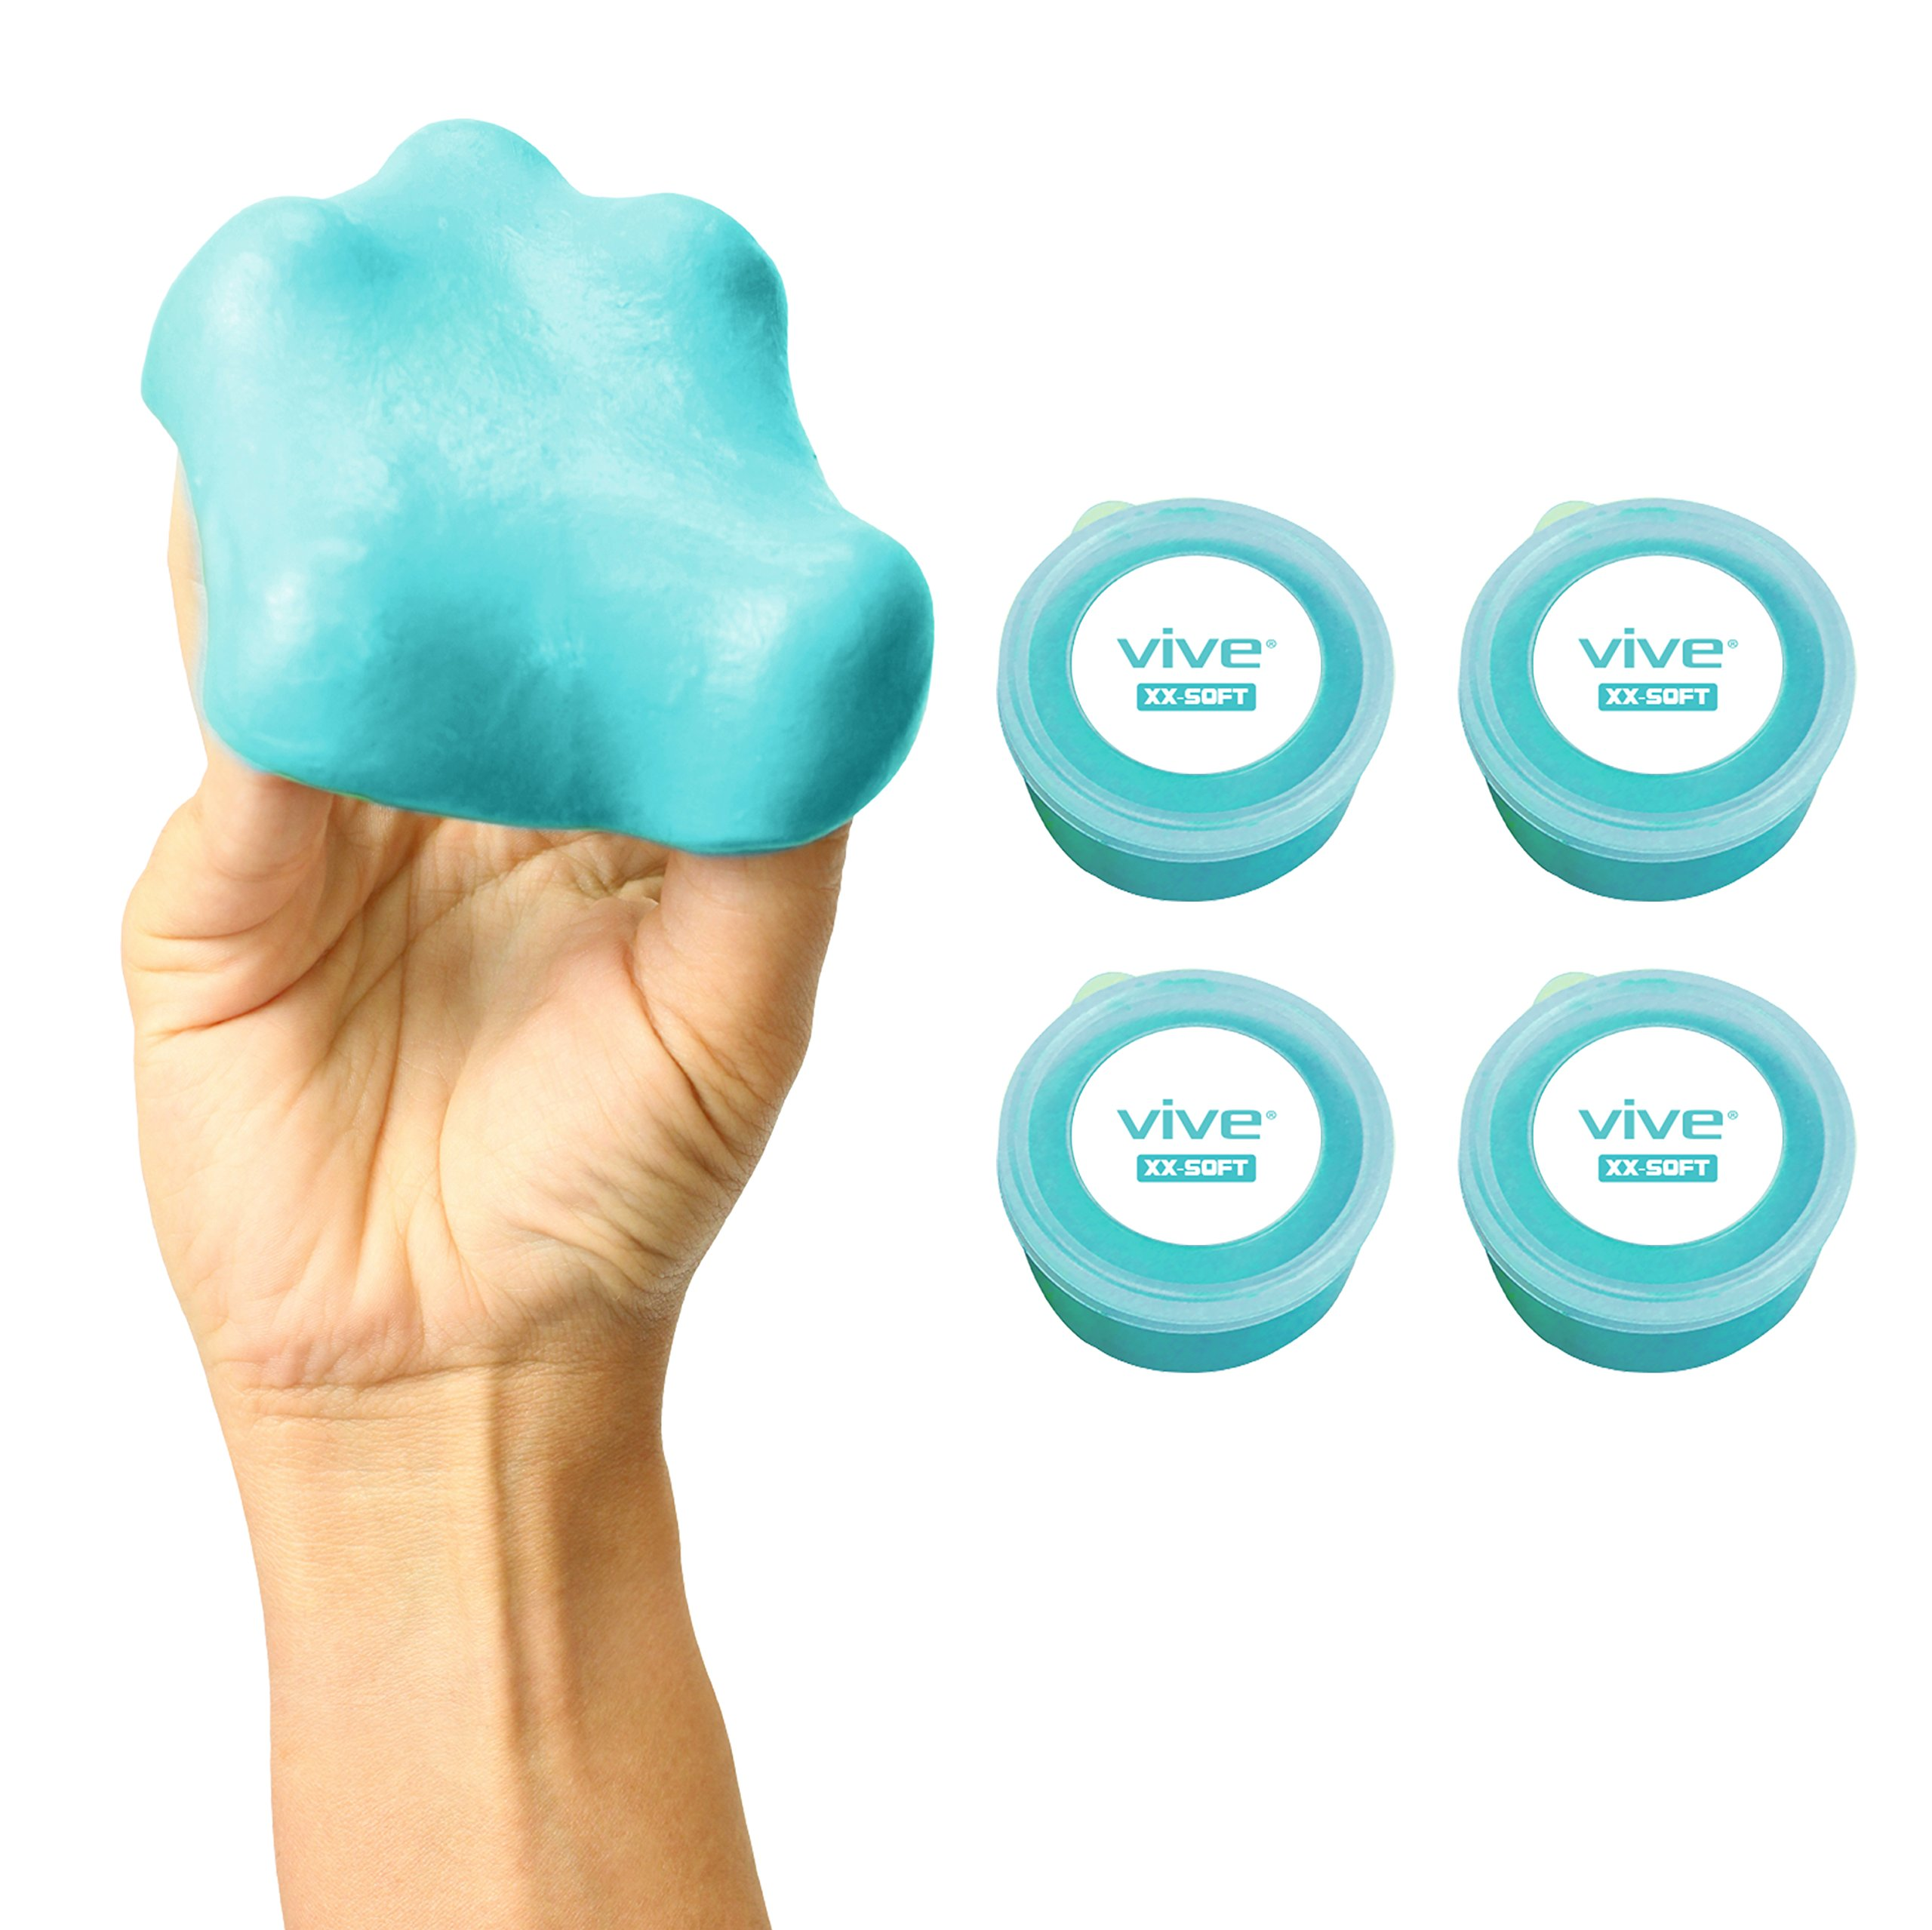 XX Soft Therapy Putty by Vive (4-Pack) for Finger, Hand & Grip Strength Exercises - Extra Soft, Soft, Medium and Firm Resistance Kit for Occupational, Physical Therapy, Thinking and Stress